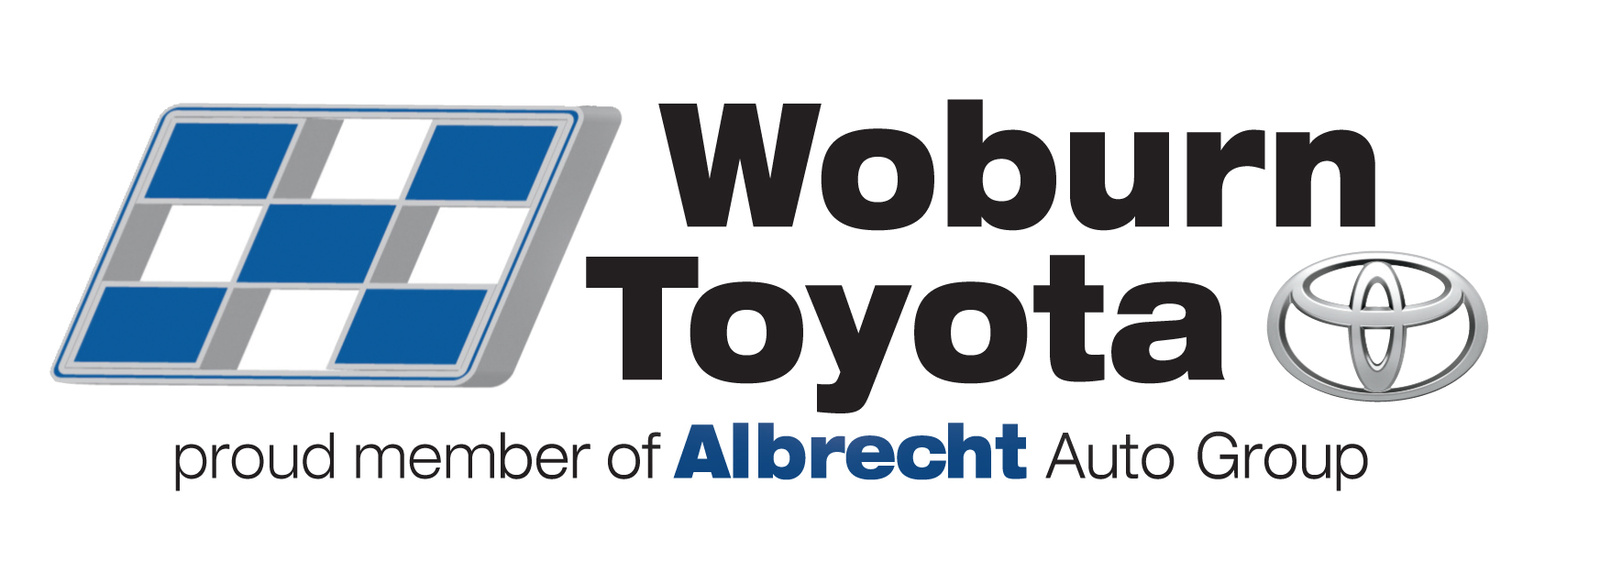 Cadillac Dealers In Ma >> Woburn Toyota - Woburn, MA: Read Consumer reviews, Browse Used and New Cars for Sale